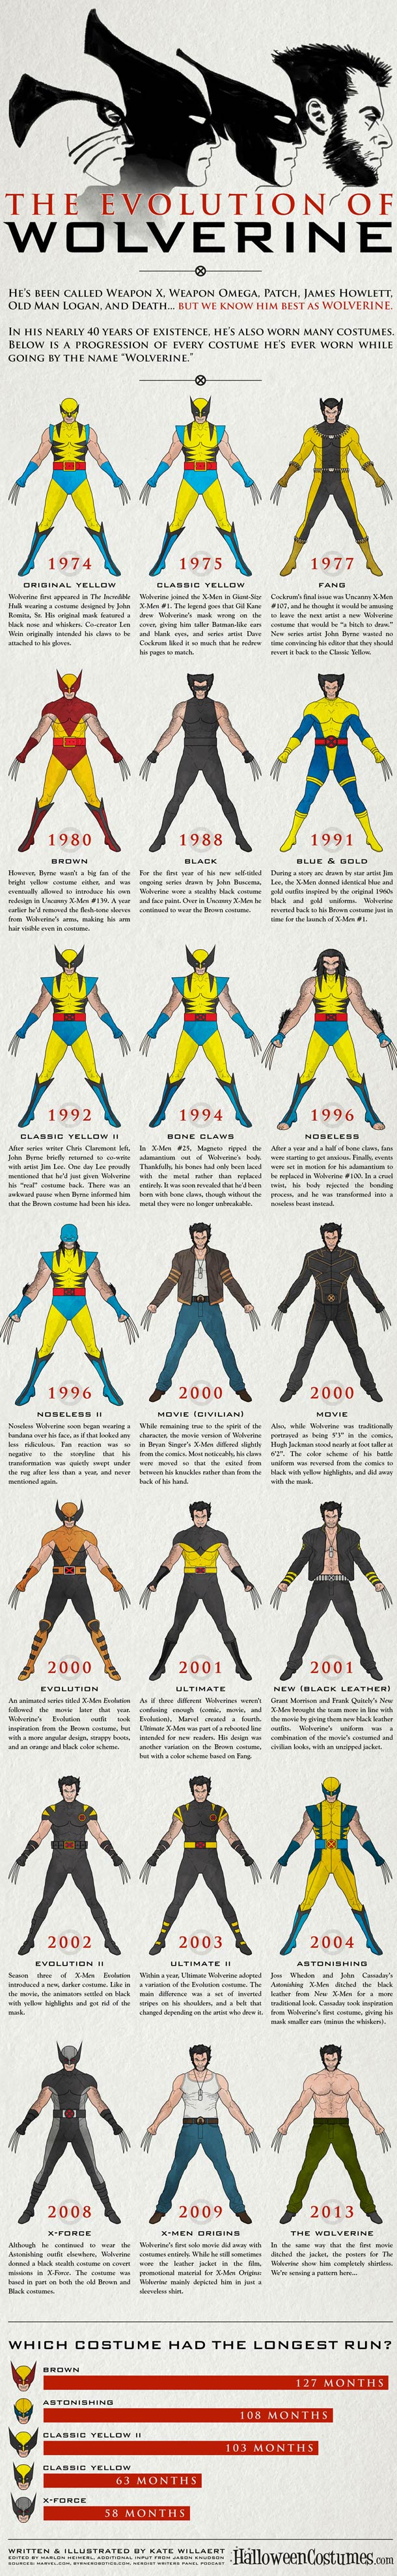 evolutuon-of-wolverine-infography